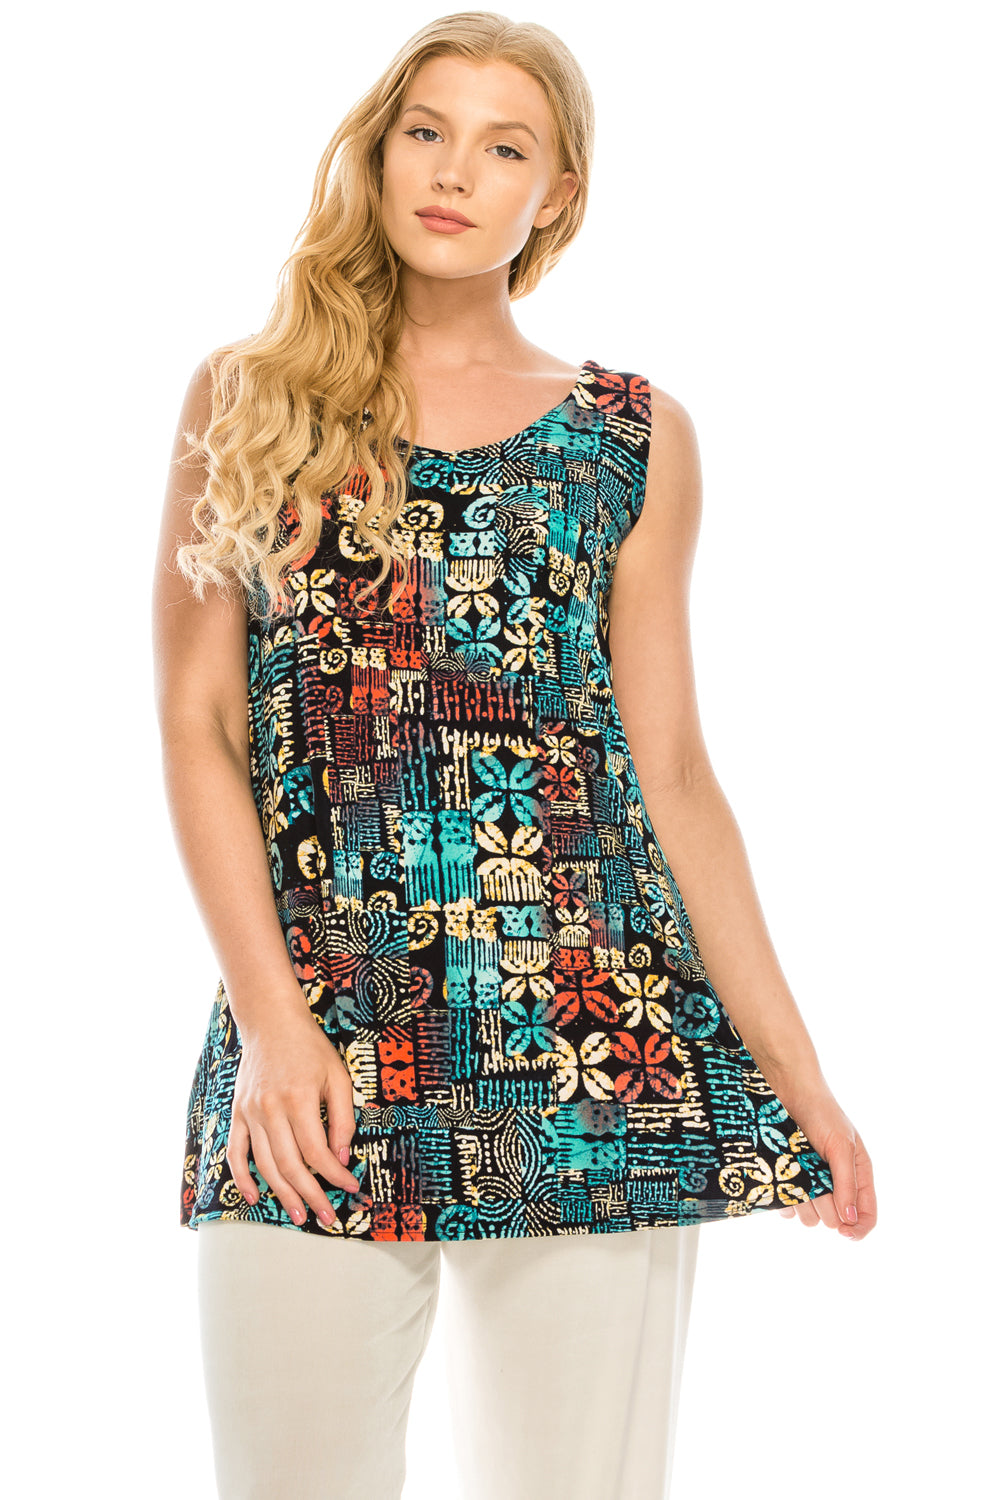 Jostar Women's Stretchy Vented Tunic Tank Top Sleeveless Print, 241BN-TP-W167 - Jostar Online